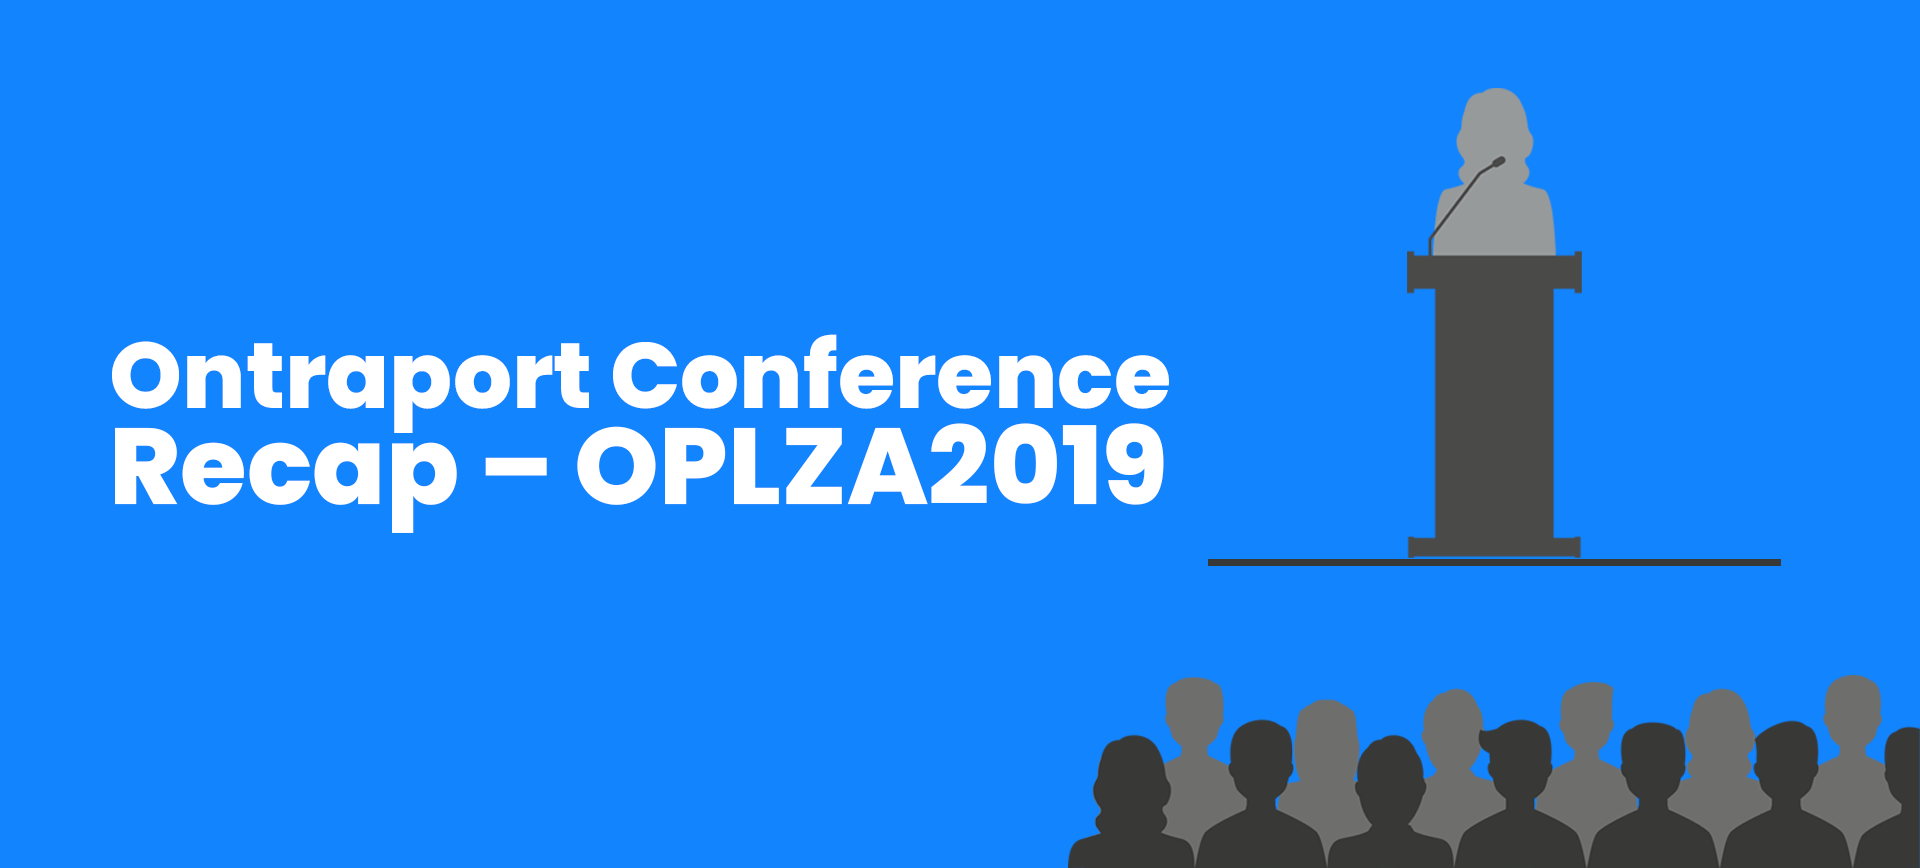 ontraport conference recap